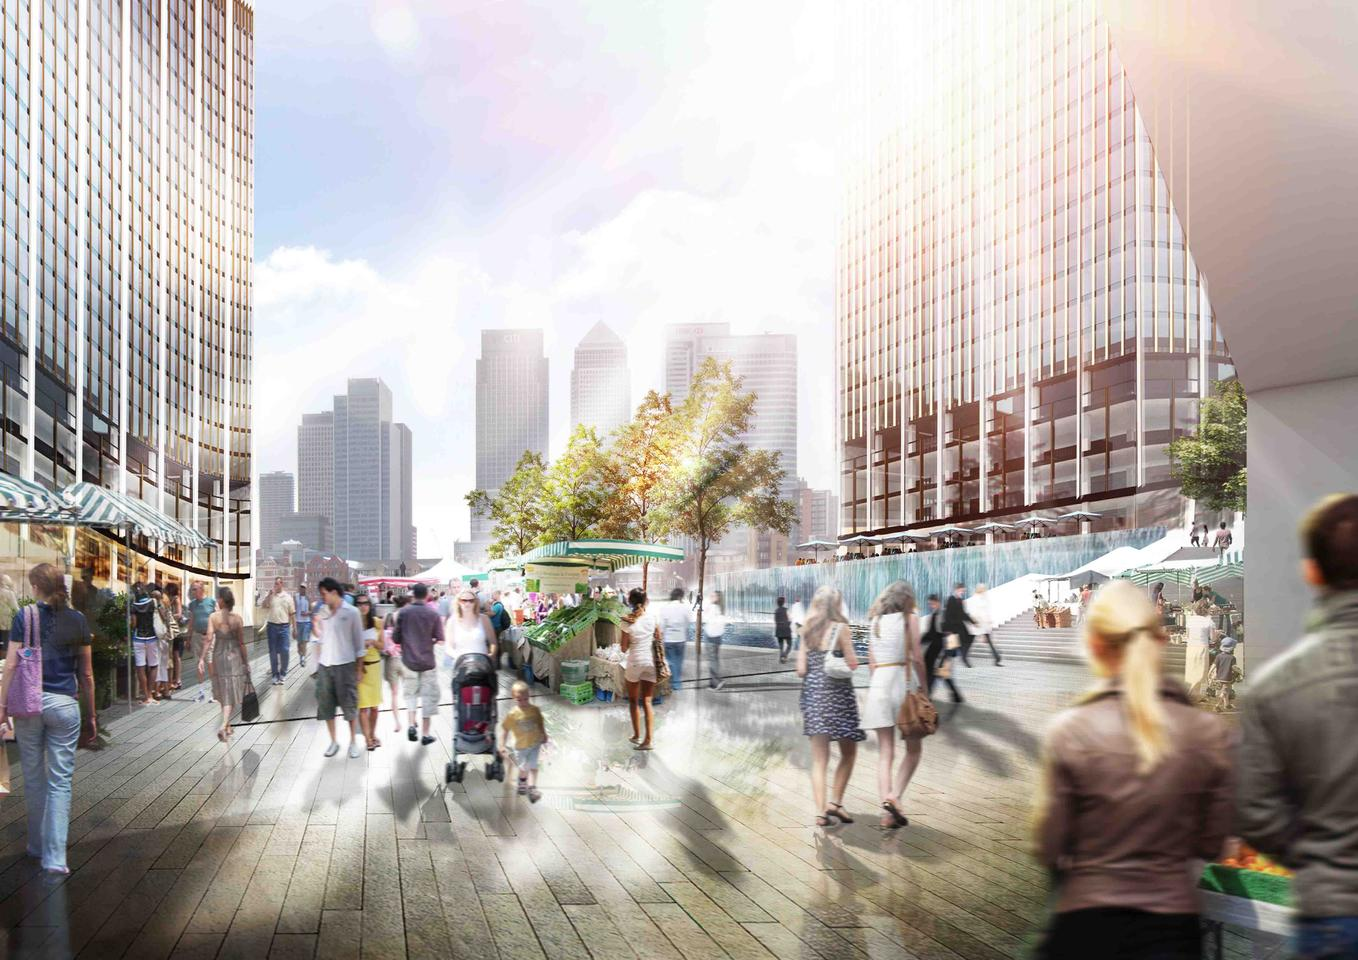 NBBJ is exploring the possibility of using a custom algorithm to help reduce shadows on the ground from new tall buildings by 60 percent (Image: NBBJ)